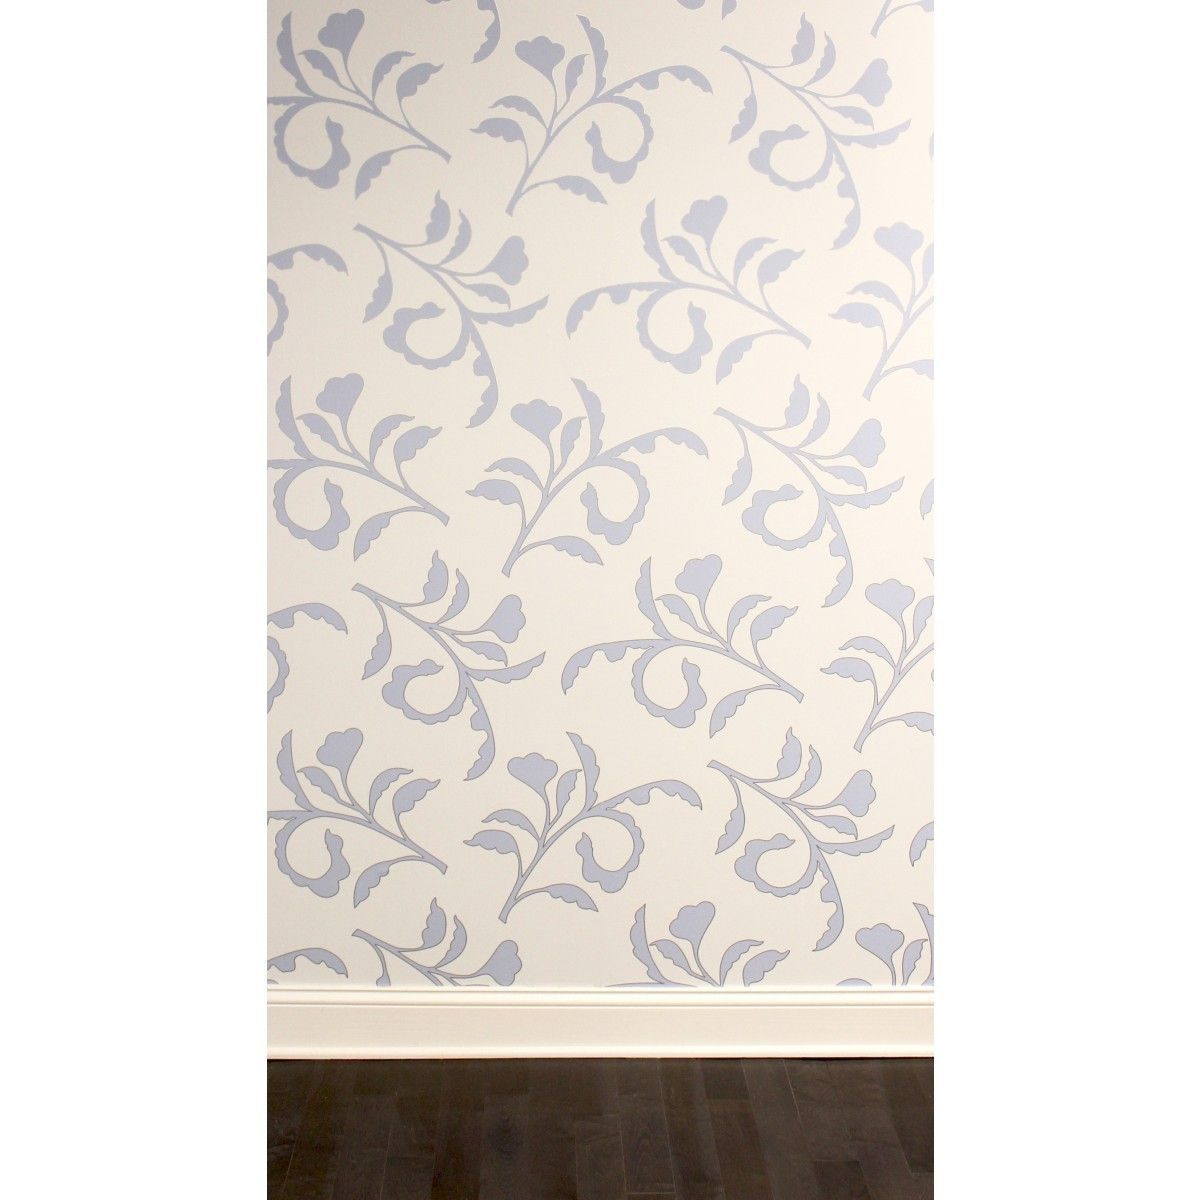 Big Branch Light Blue Ivory CR444 Self-Adhesive Wallpaper